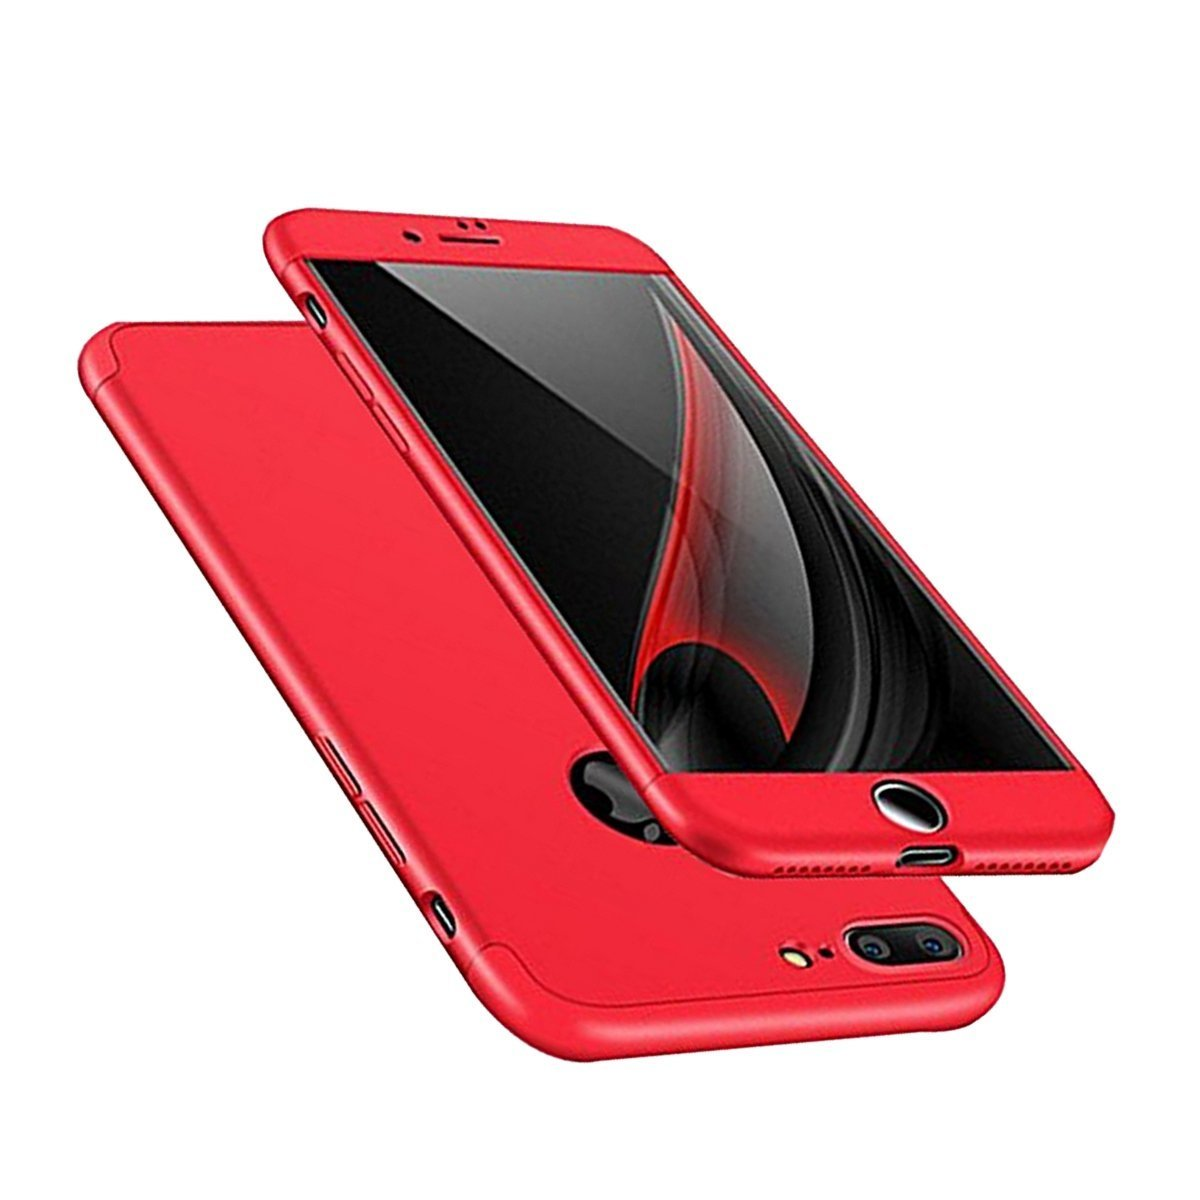 iPhone 8 Plus Case, Aicase AICase 3 in 1 Ultra Thin and Slim Hard PC Case Anti-Scratches Premium Slim 360 Degree Full Body Protective Cover for Apple iPhone 8 Plus 5.5 Inch (2017) (Red)